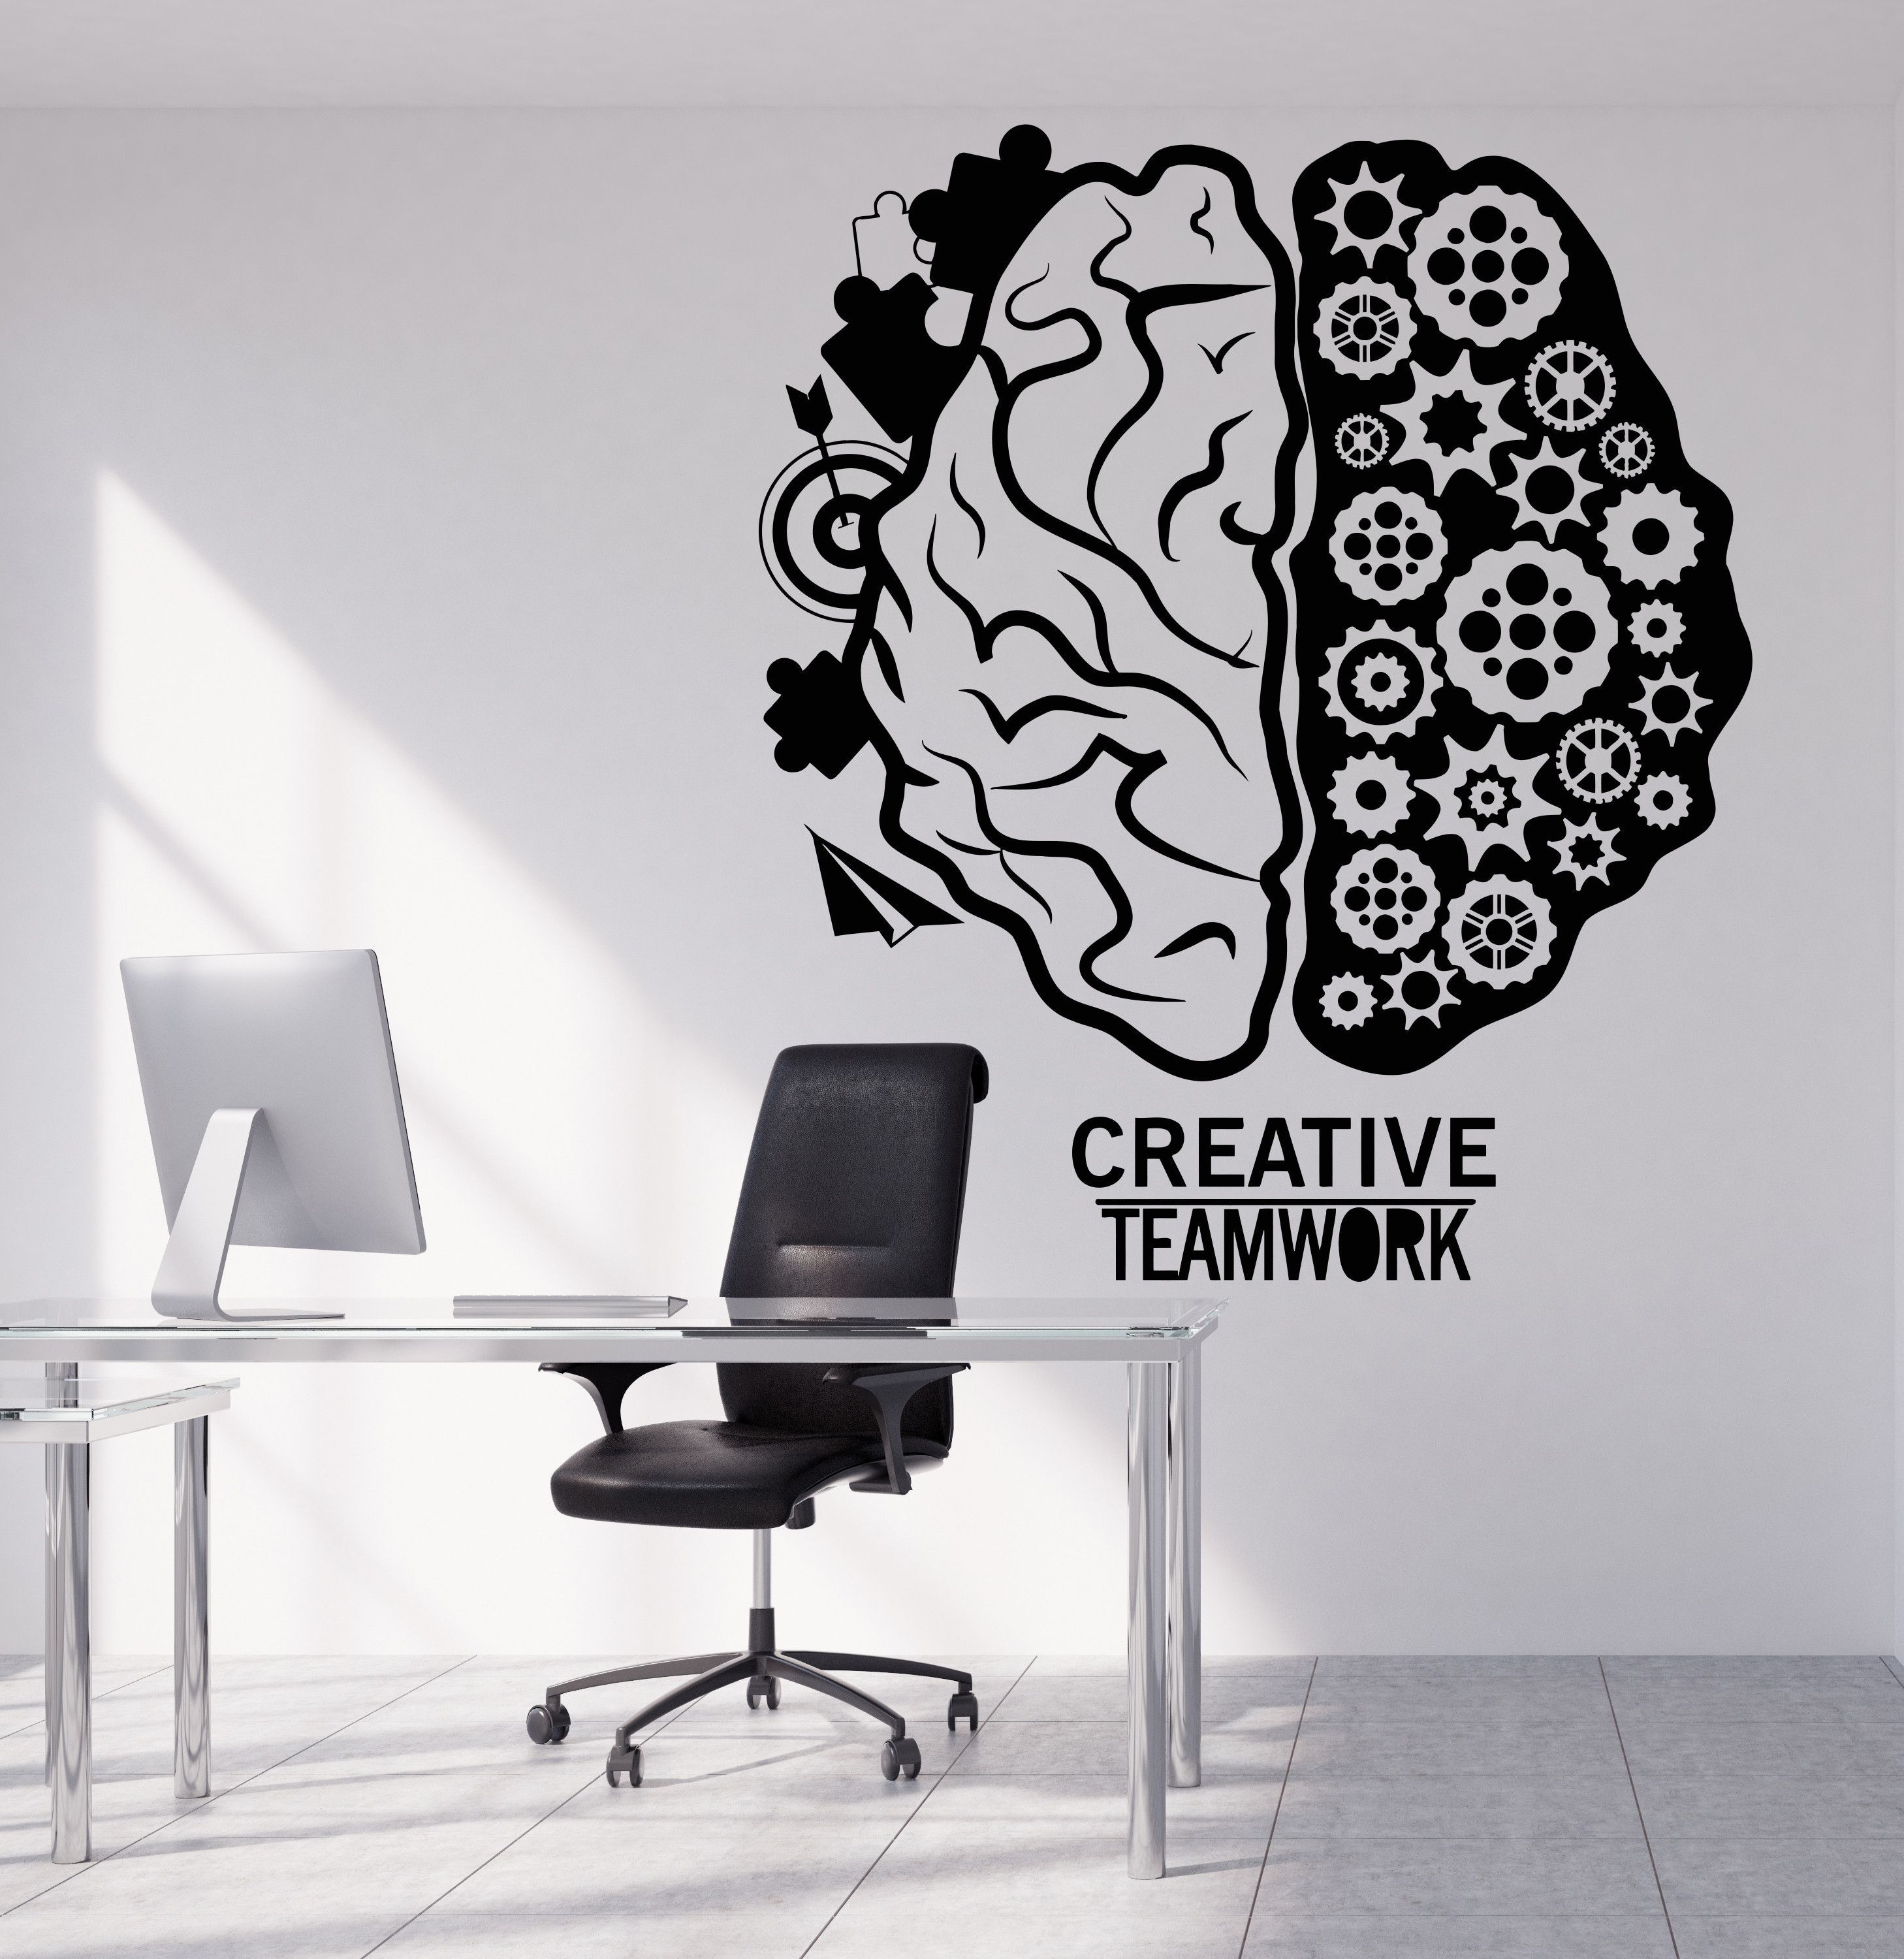 vinyl wall decal brain business teamwork gear creative on wall stickers painting id=78689